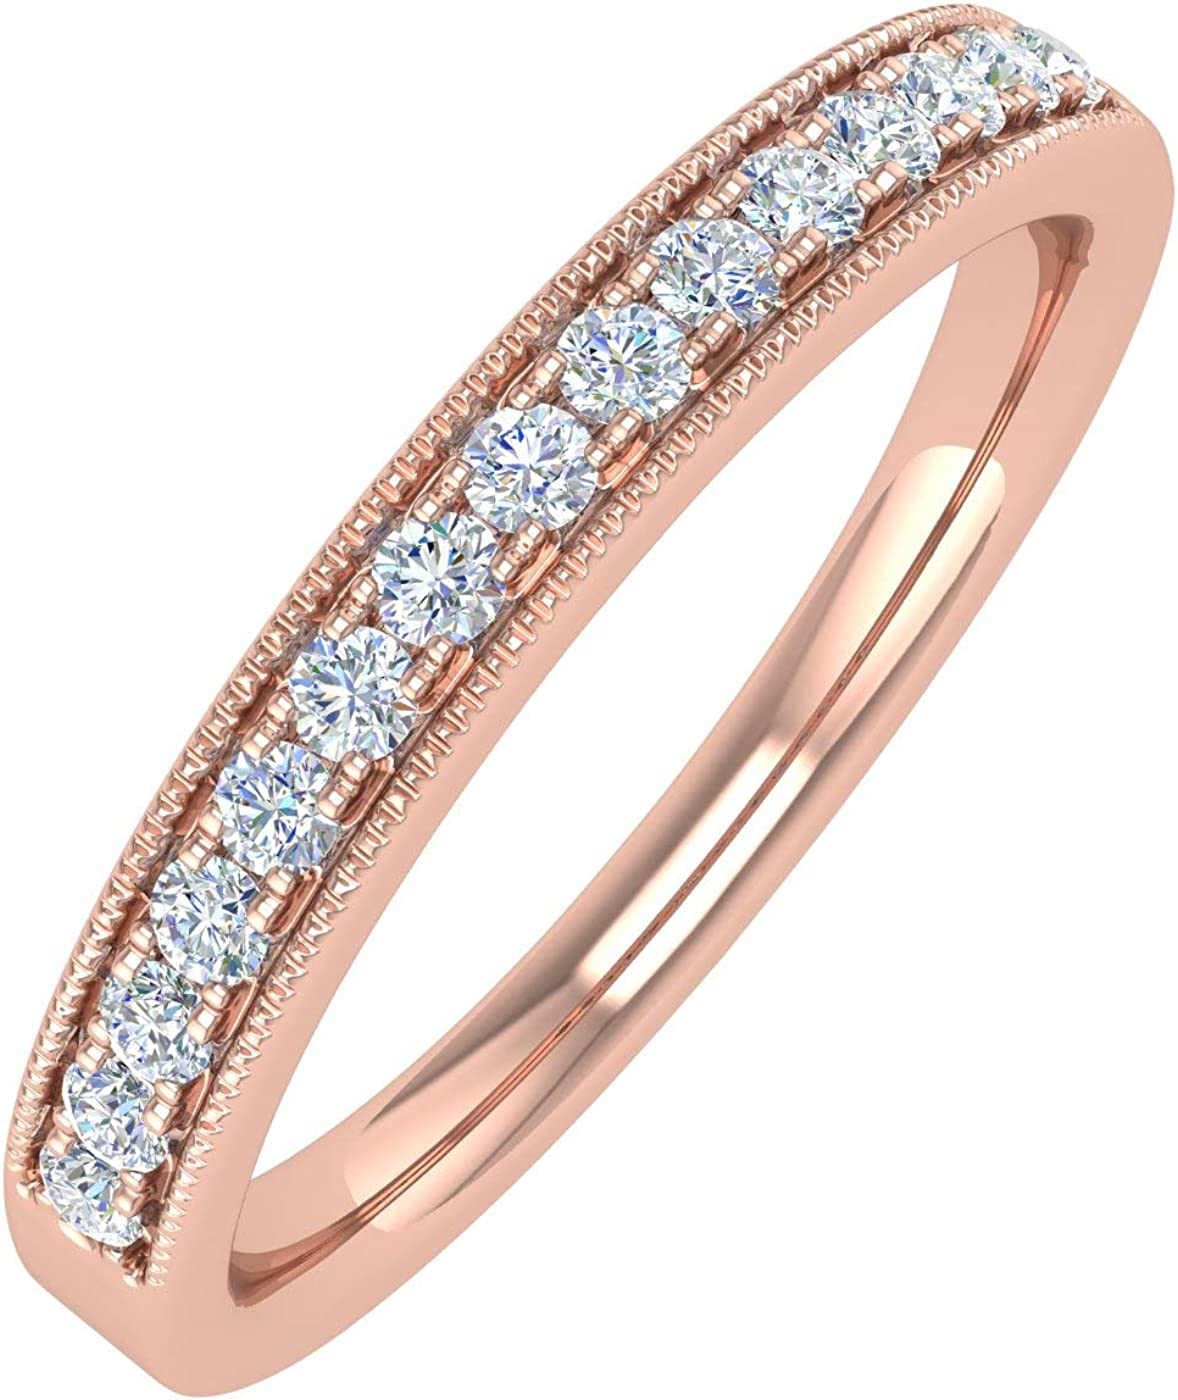 1 Super beauty product restock quality top 5 Carat Diamond Vintage Wedding Band 10K in San Diego Mall Gold Ring